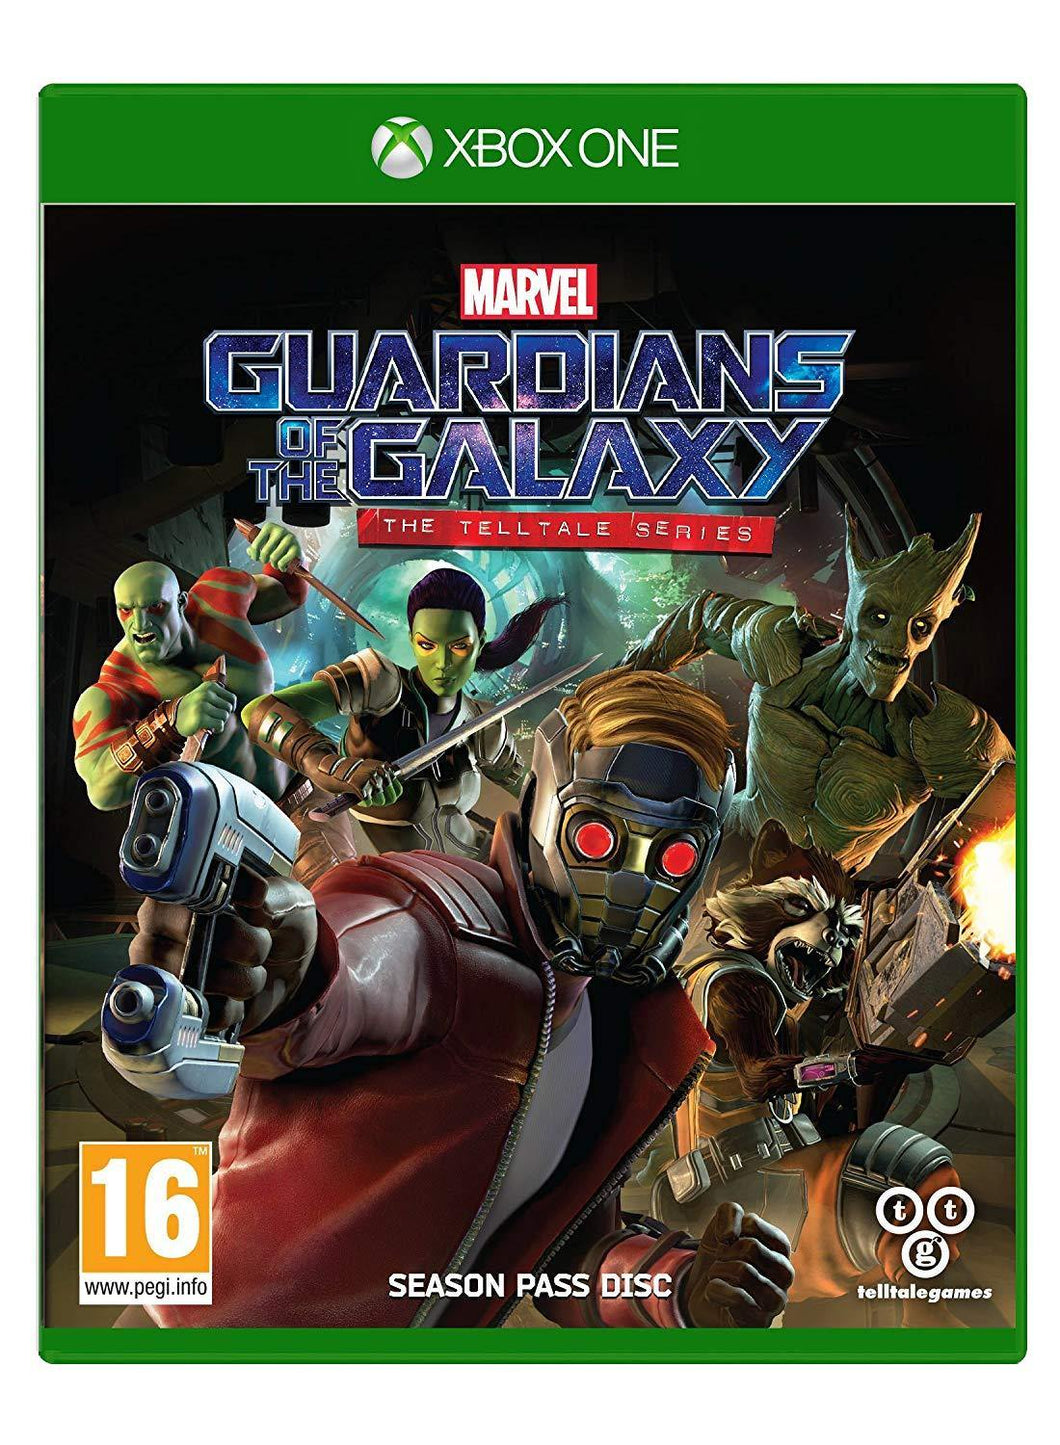 Guardians of the Galaxy The Telltale Series Xbox One